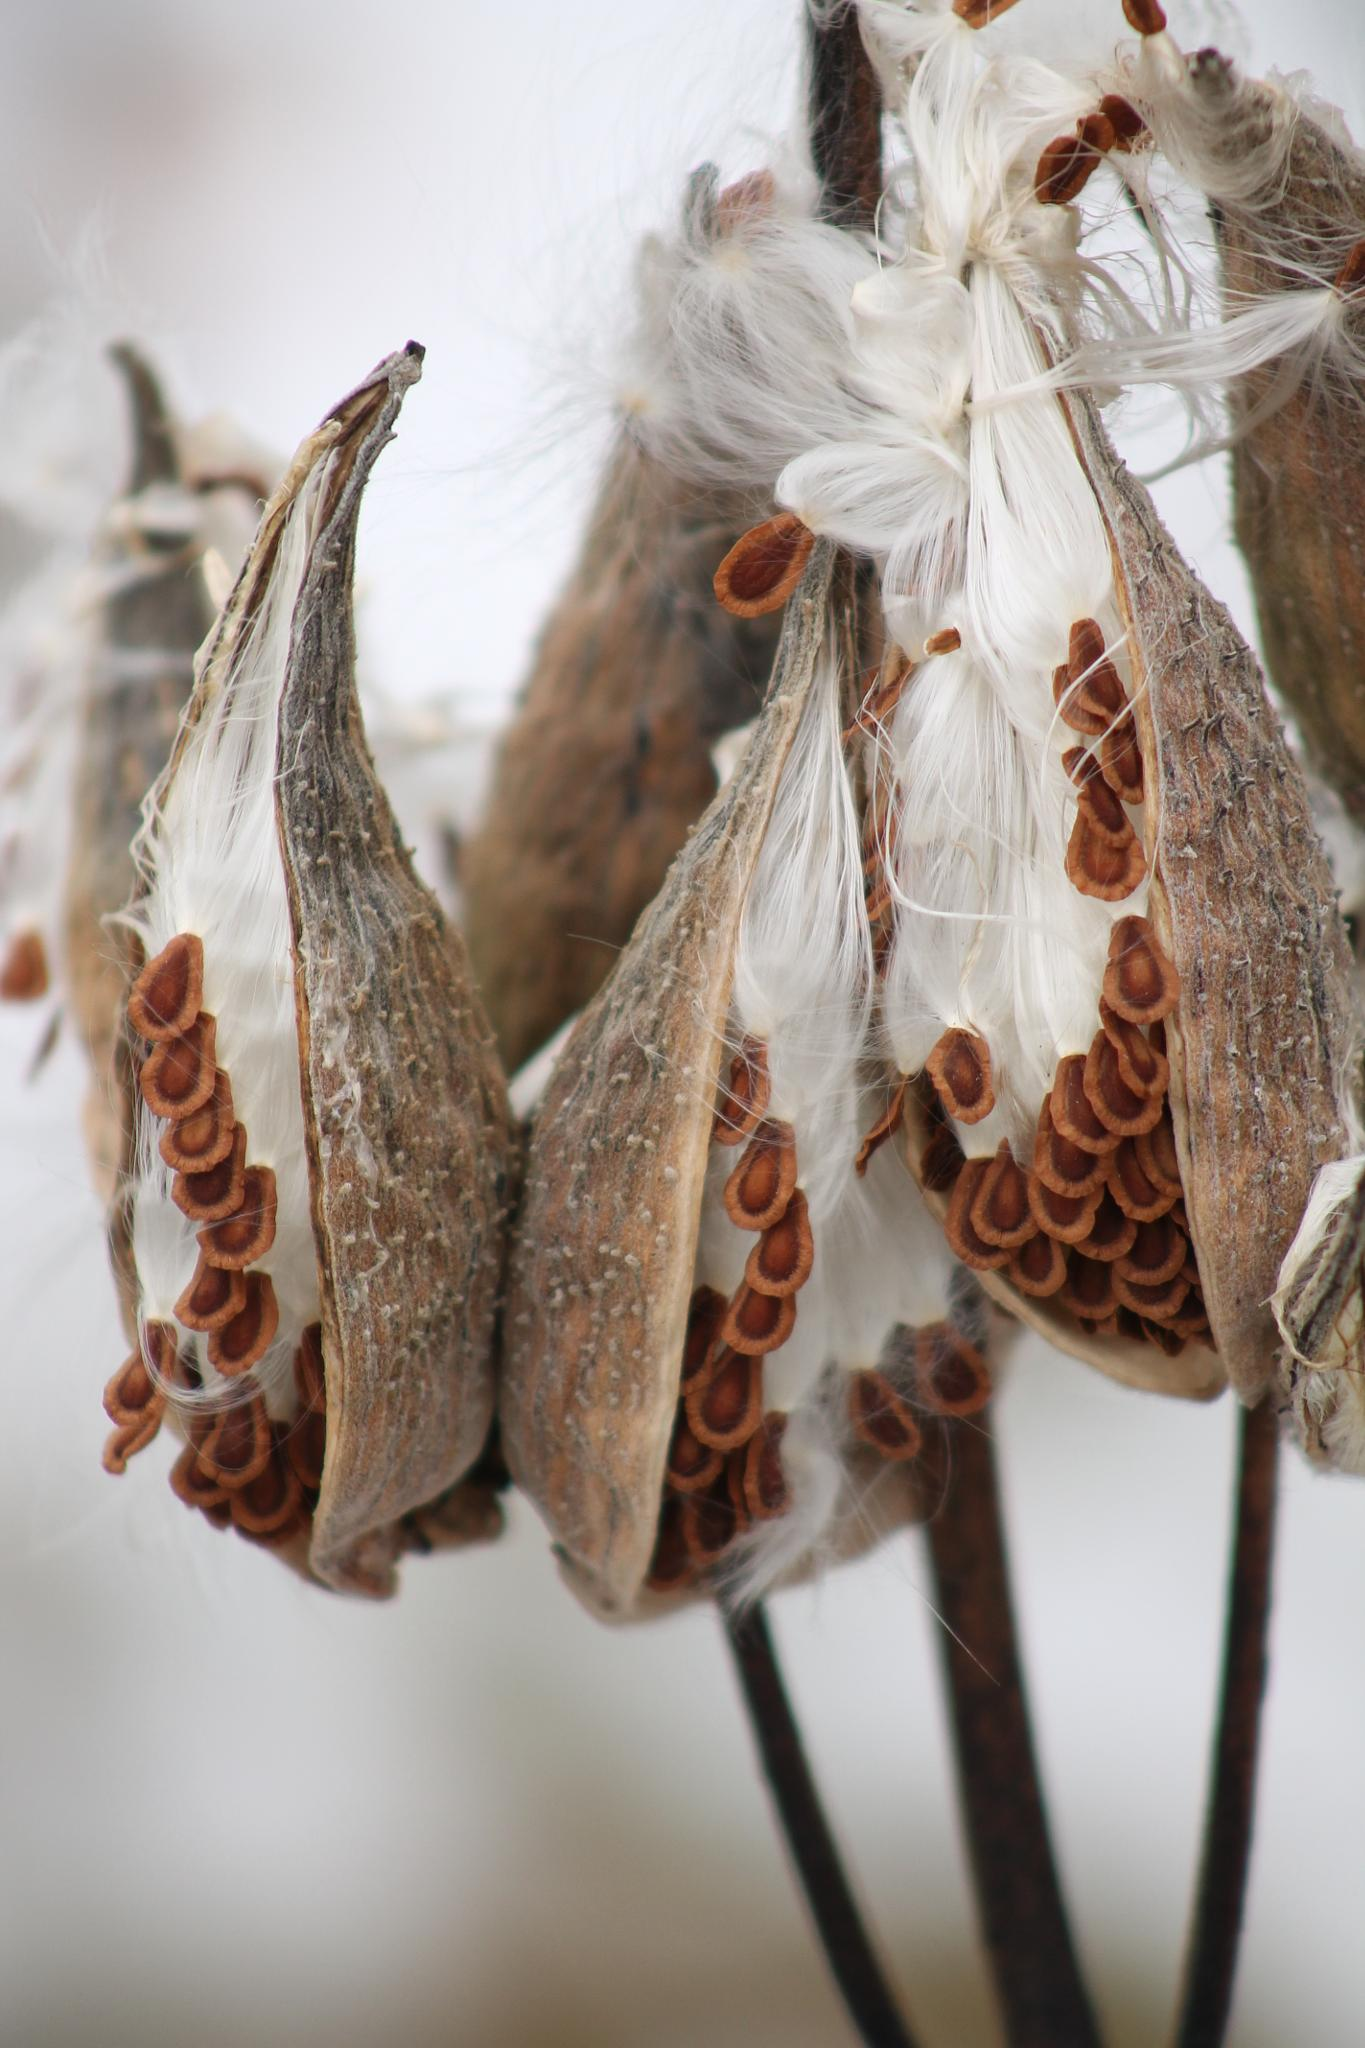 Three Milkweed Pods by kajen746